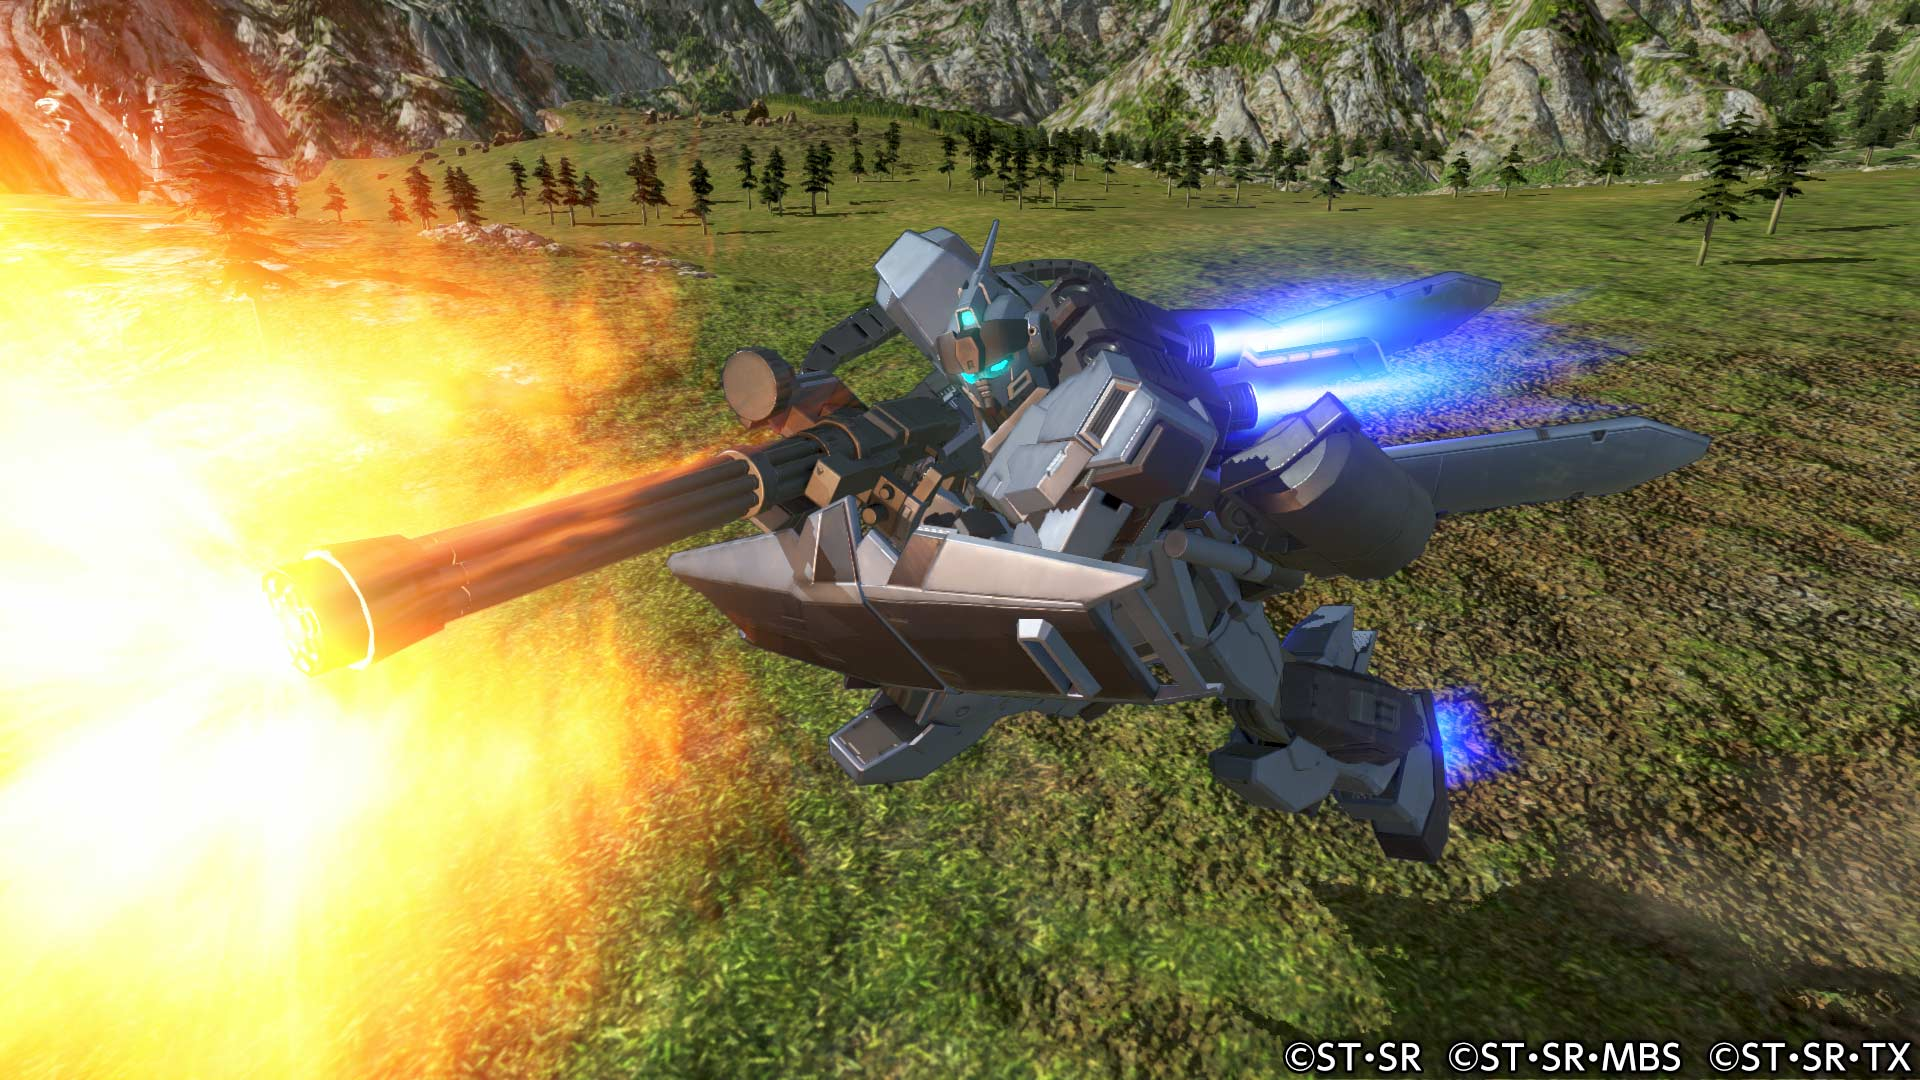 Additional Playable Mobile Suit: Pale Rider